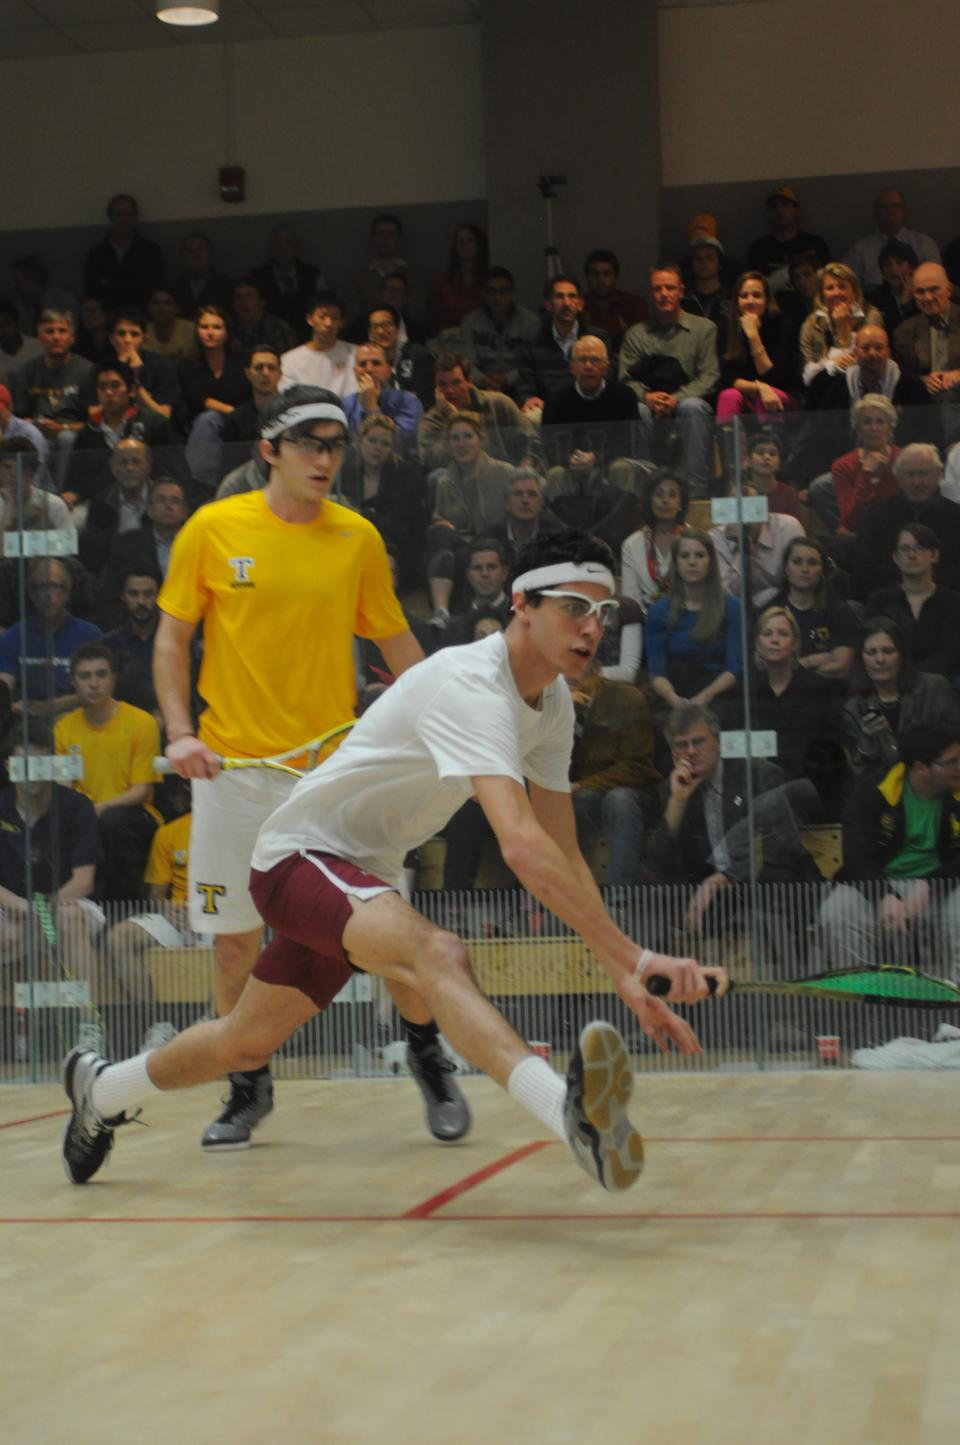 Senior Ali Farag, the 2012 CSA national champion, posted an 11-1, 11-5, 11-6 win in the Crimson's sweep of Penn.